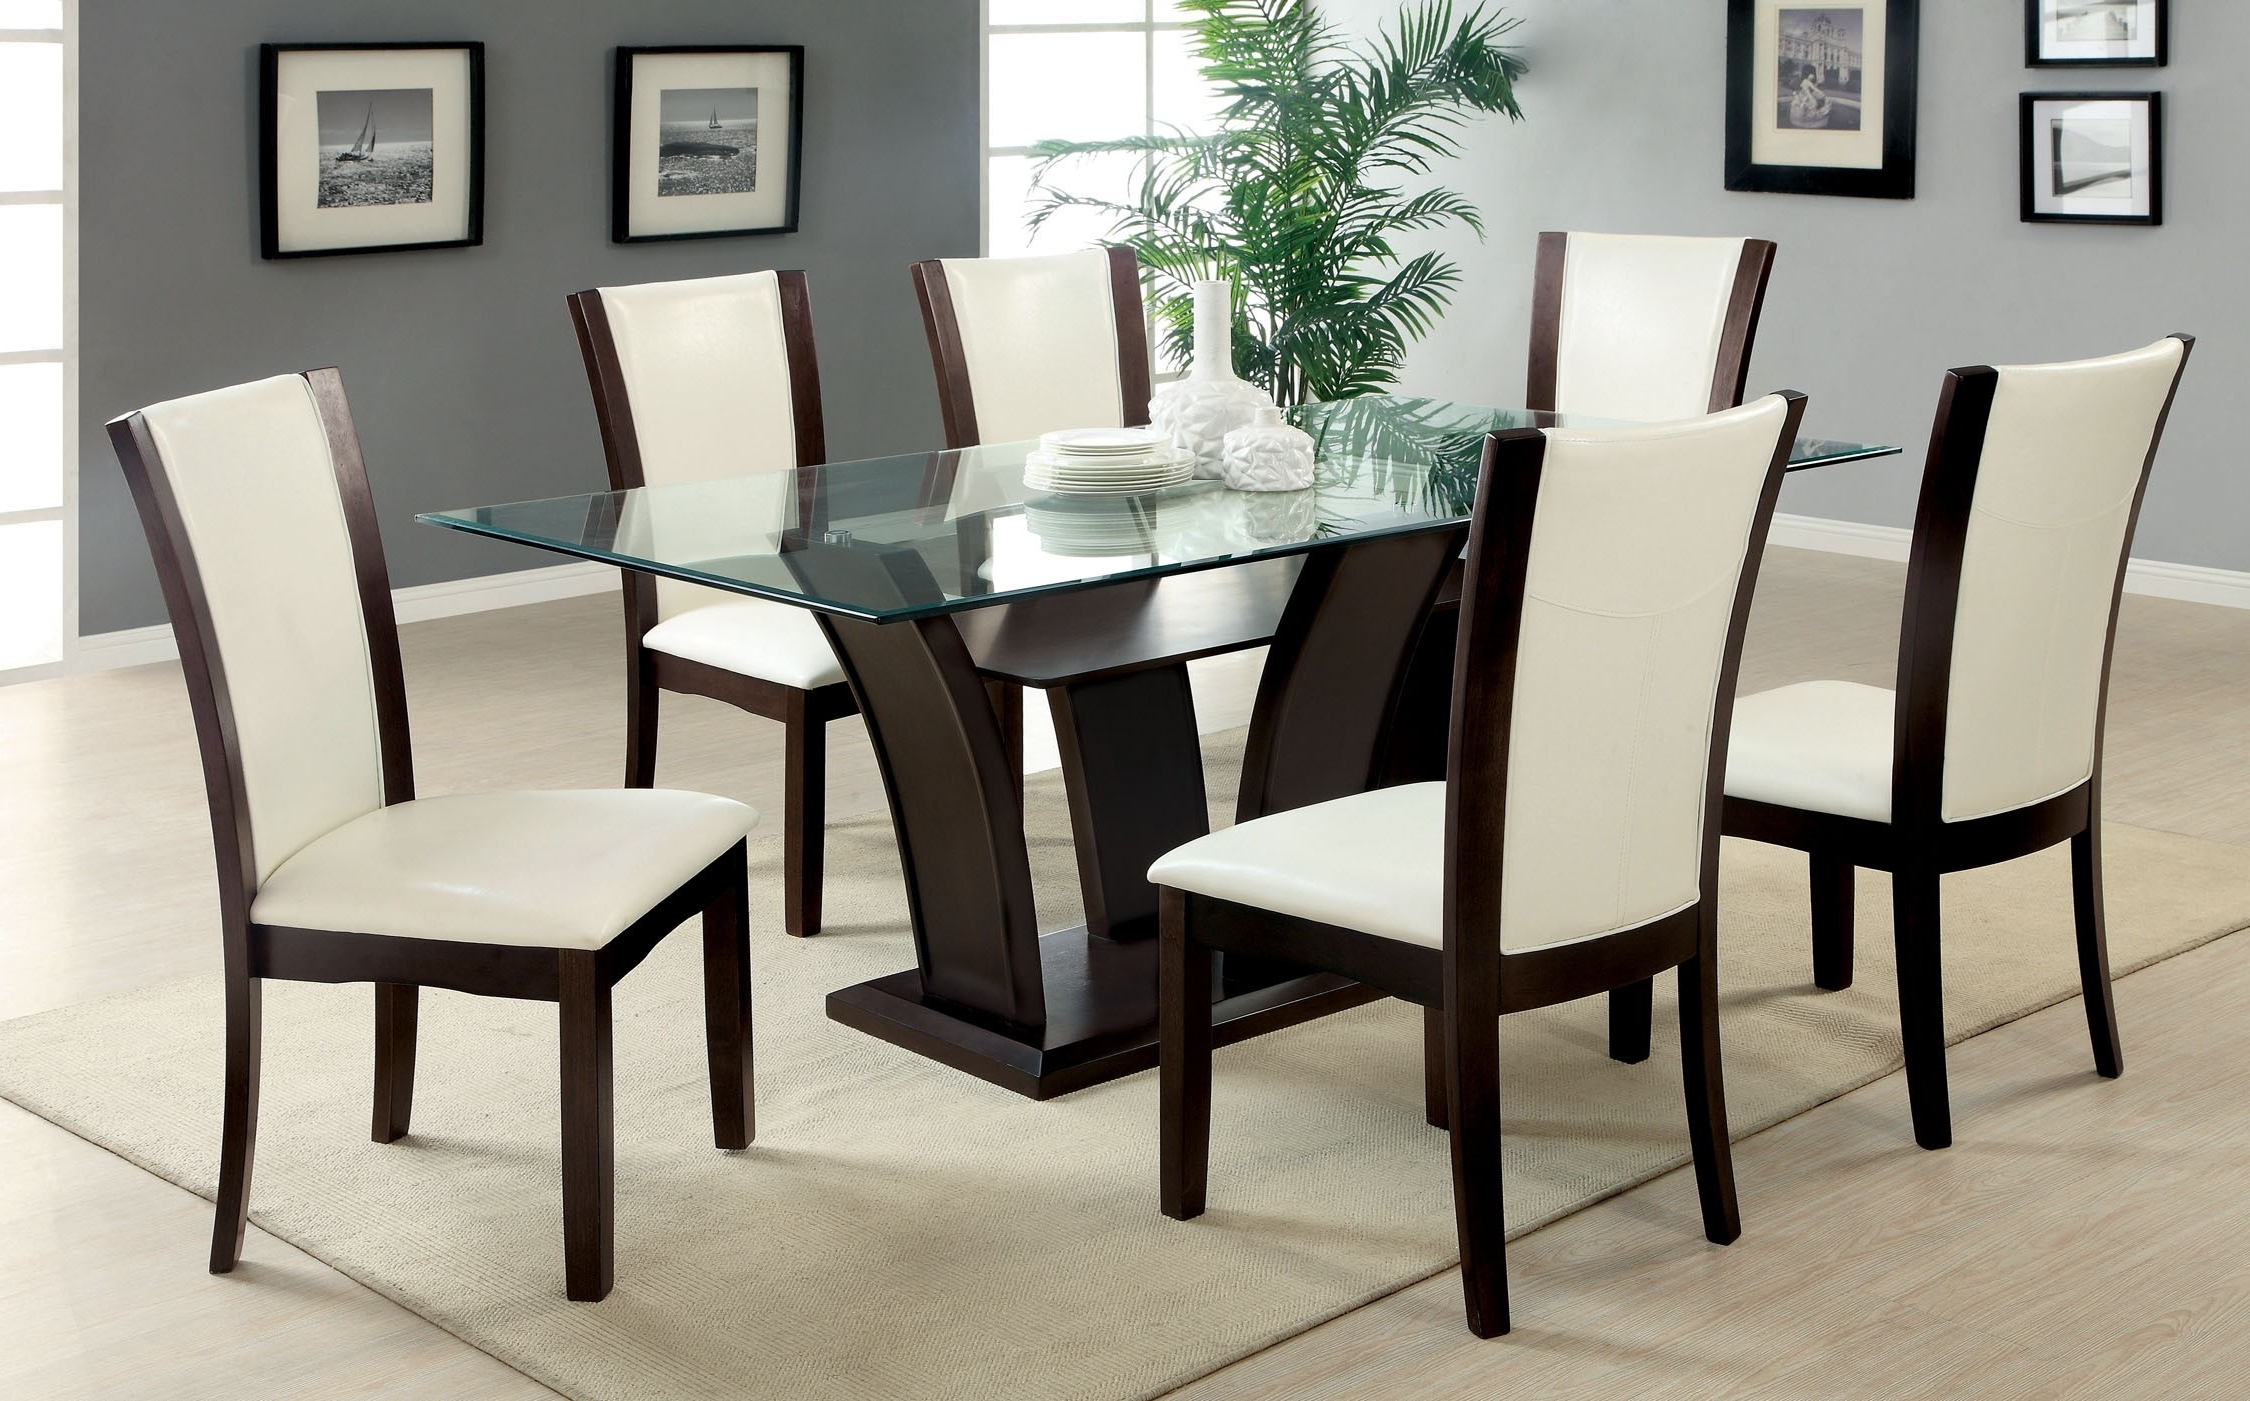 Famous Glass Dining Table Sets 6 Chairs • Table Setting Ideas Throughout Cheap Glass Dining Tables And 6 Chairs (View 1 of 25)